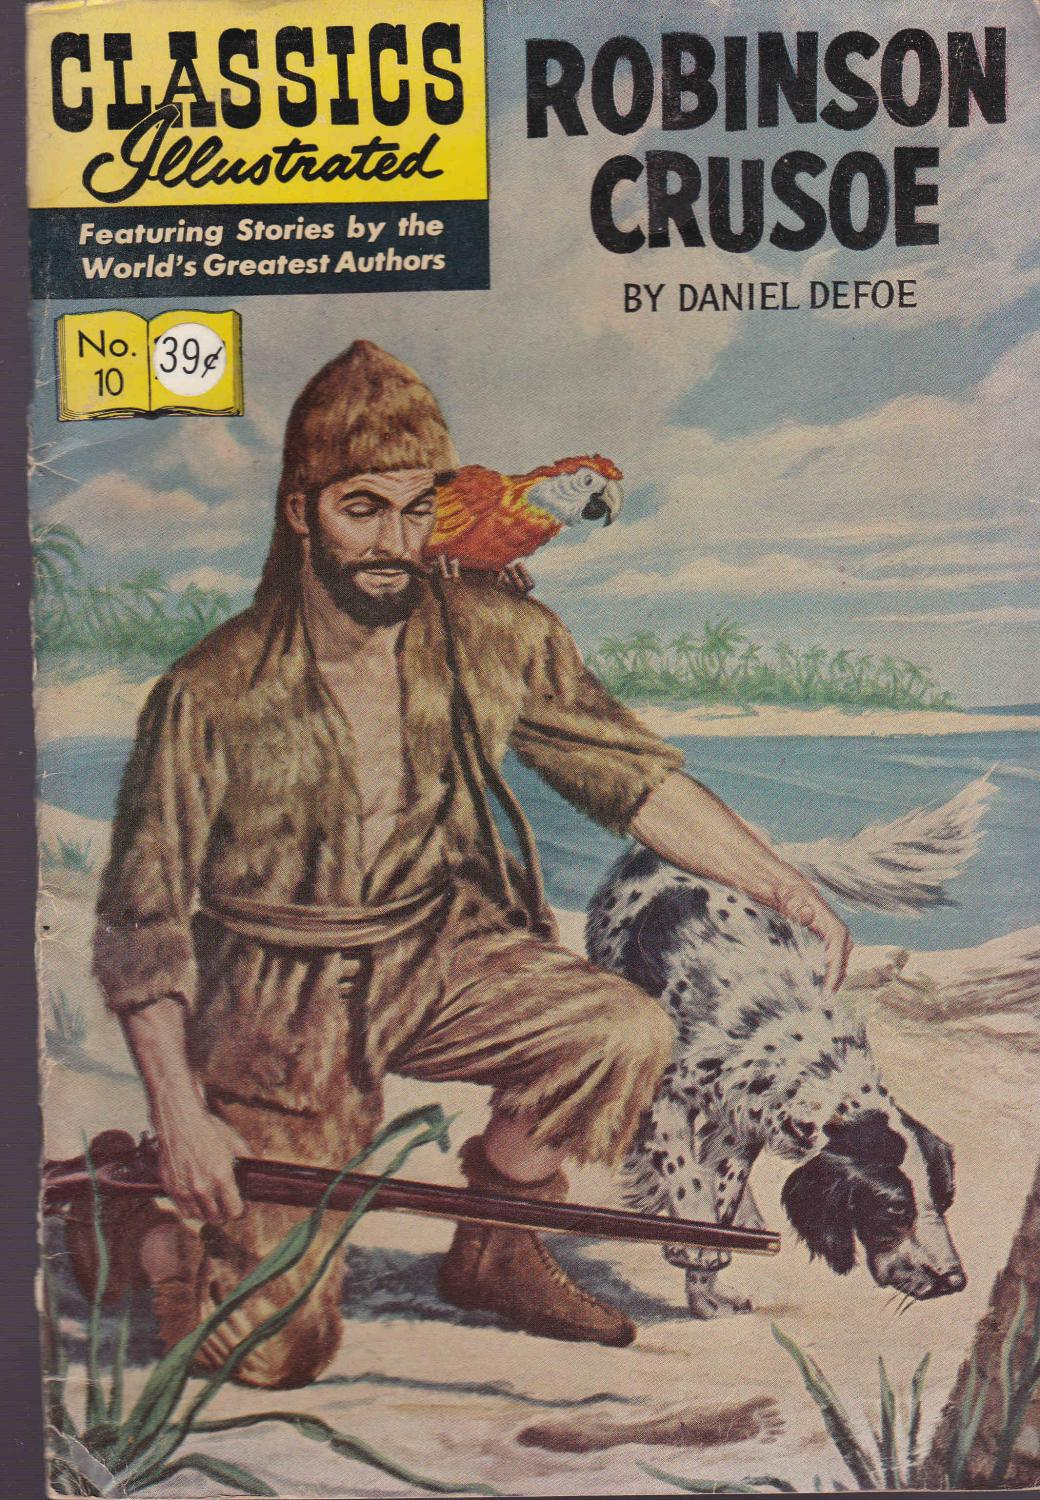 essays on robinson crusoe The mastery of nature is vainly believed to be an adequate substitute for self-mastery, - reinhold niebuhr in robinson crusoe, by daniel defoe, there are.